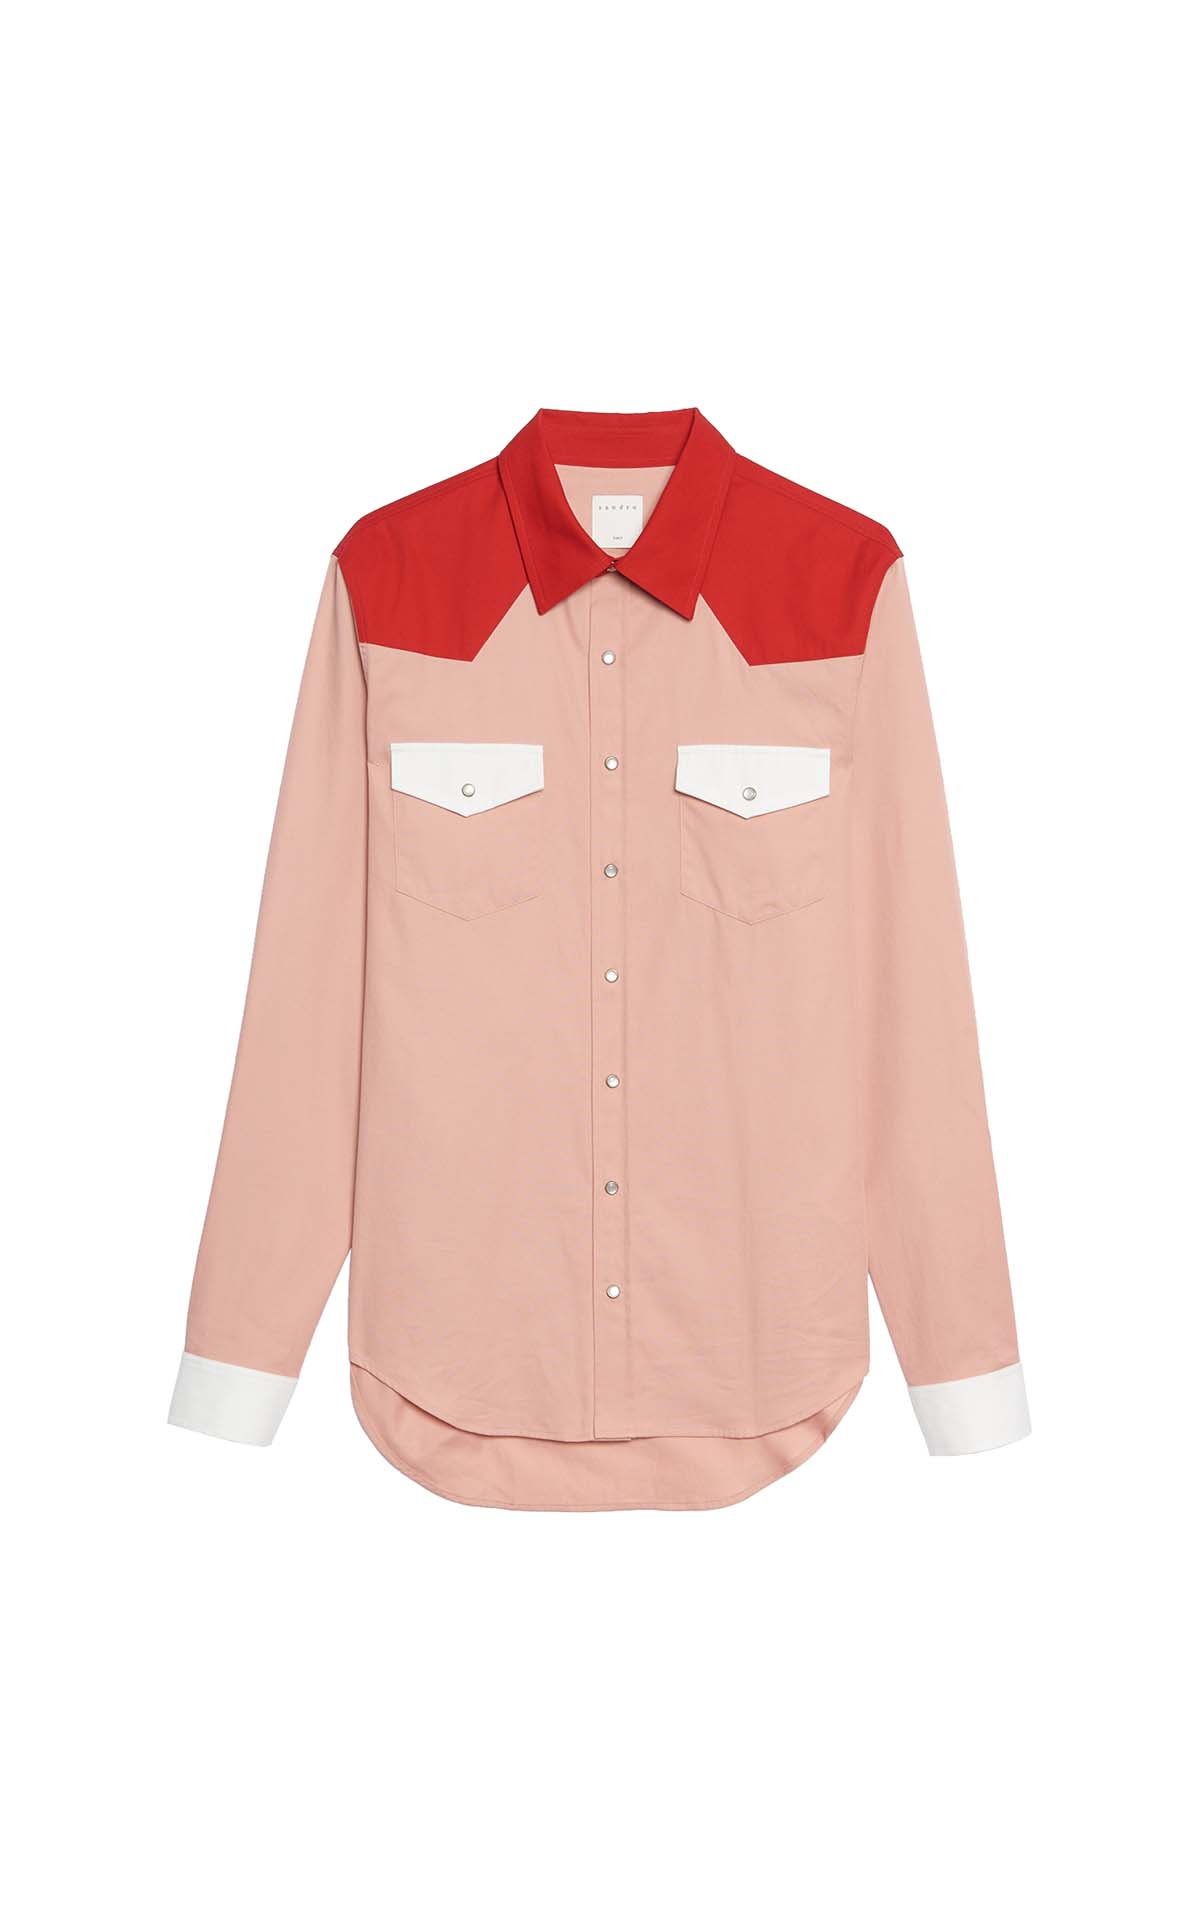 Sandro Light pink shirt at The Bicester Village Shopping Collection